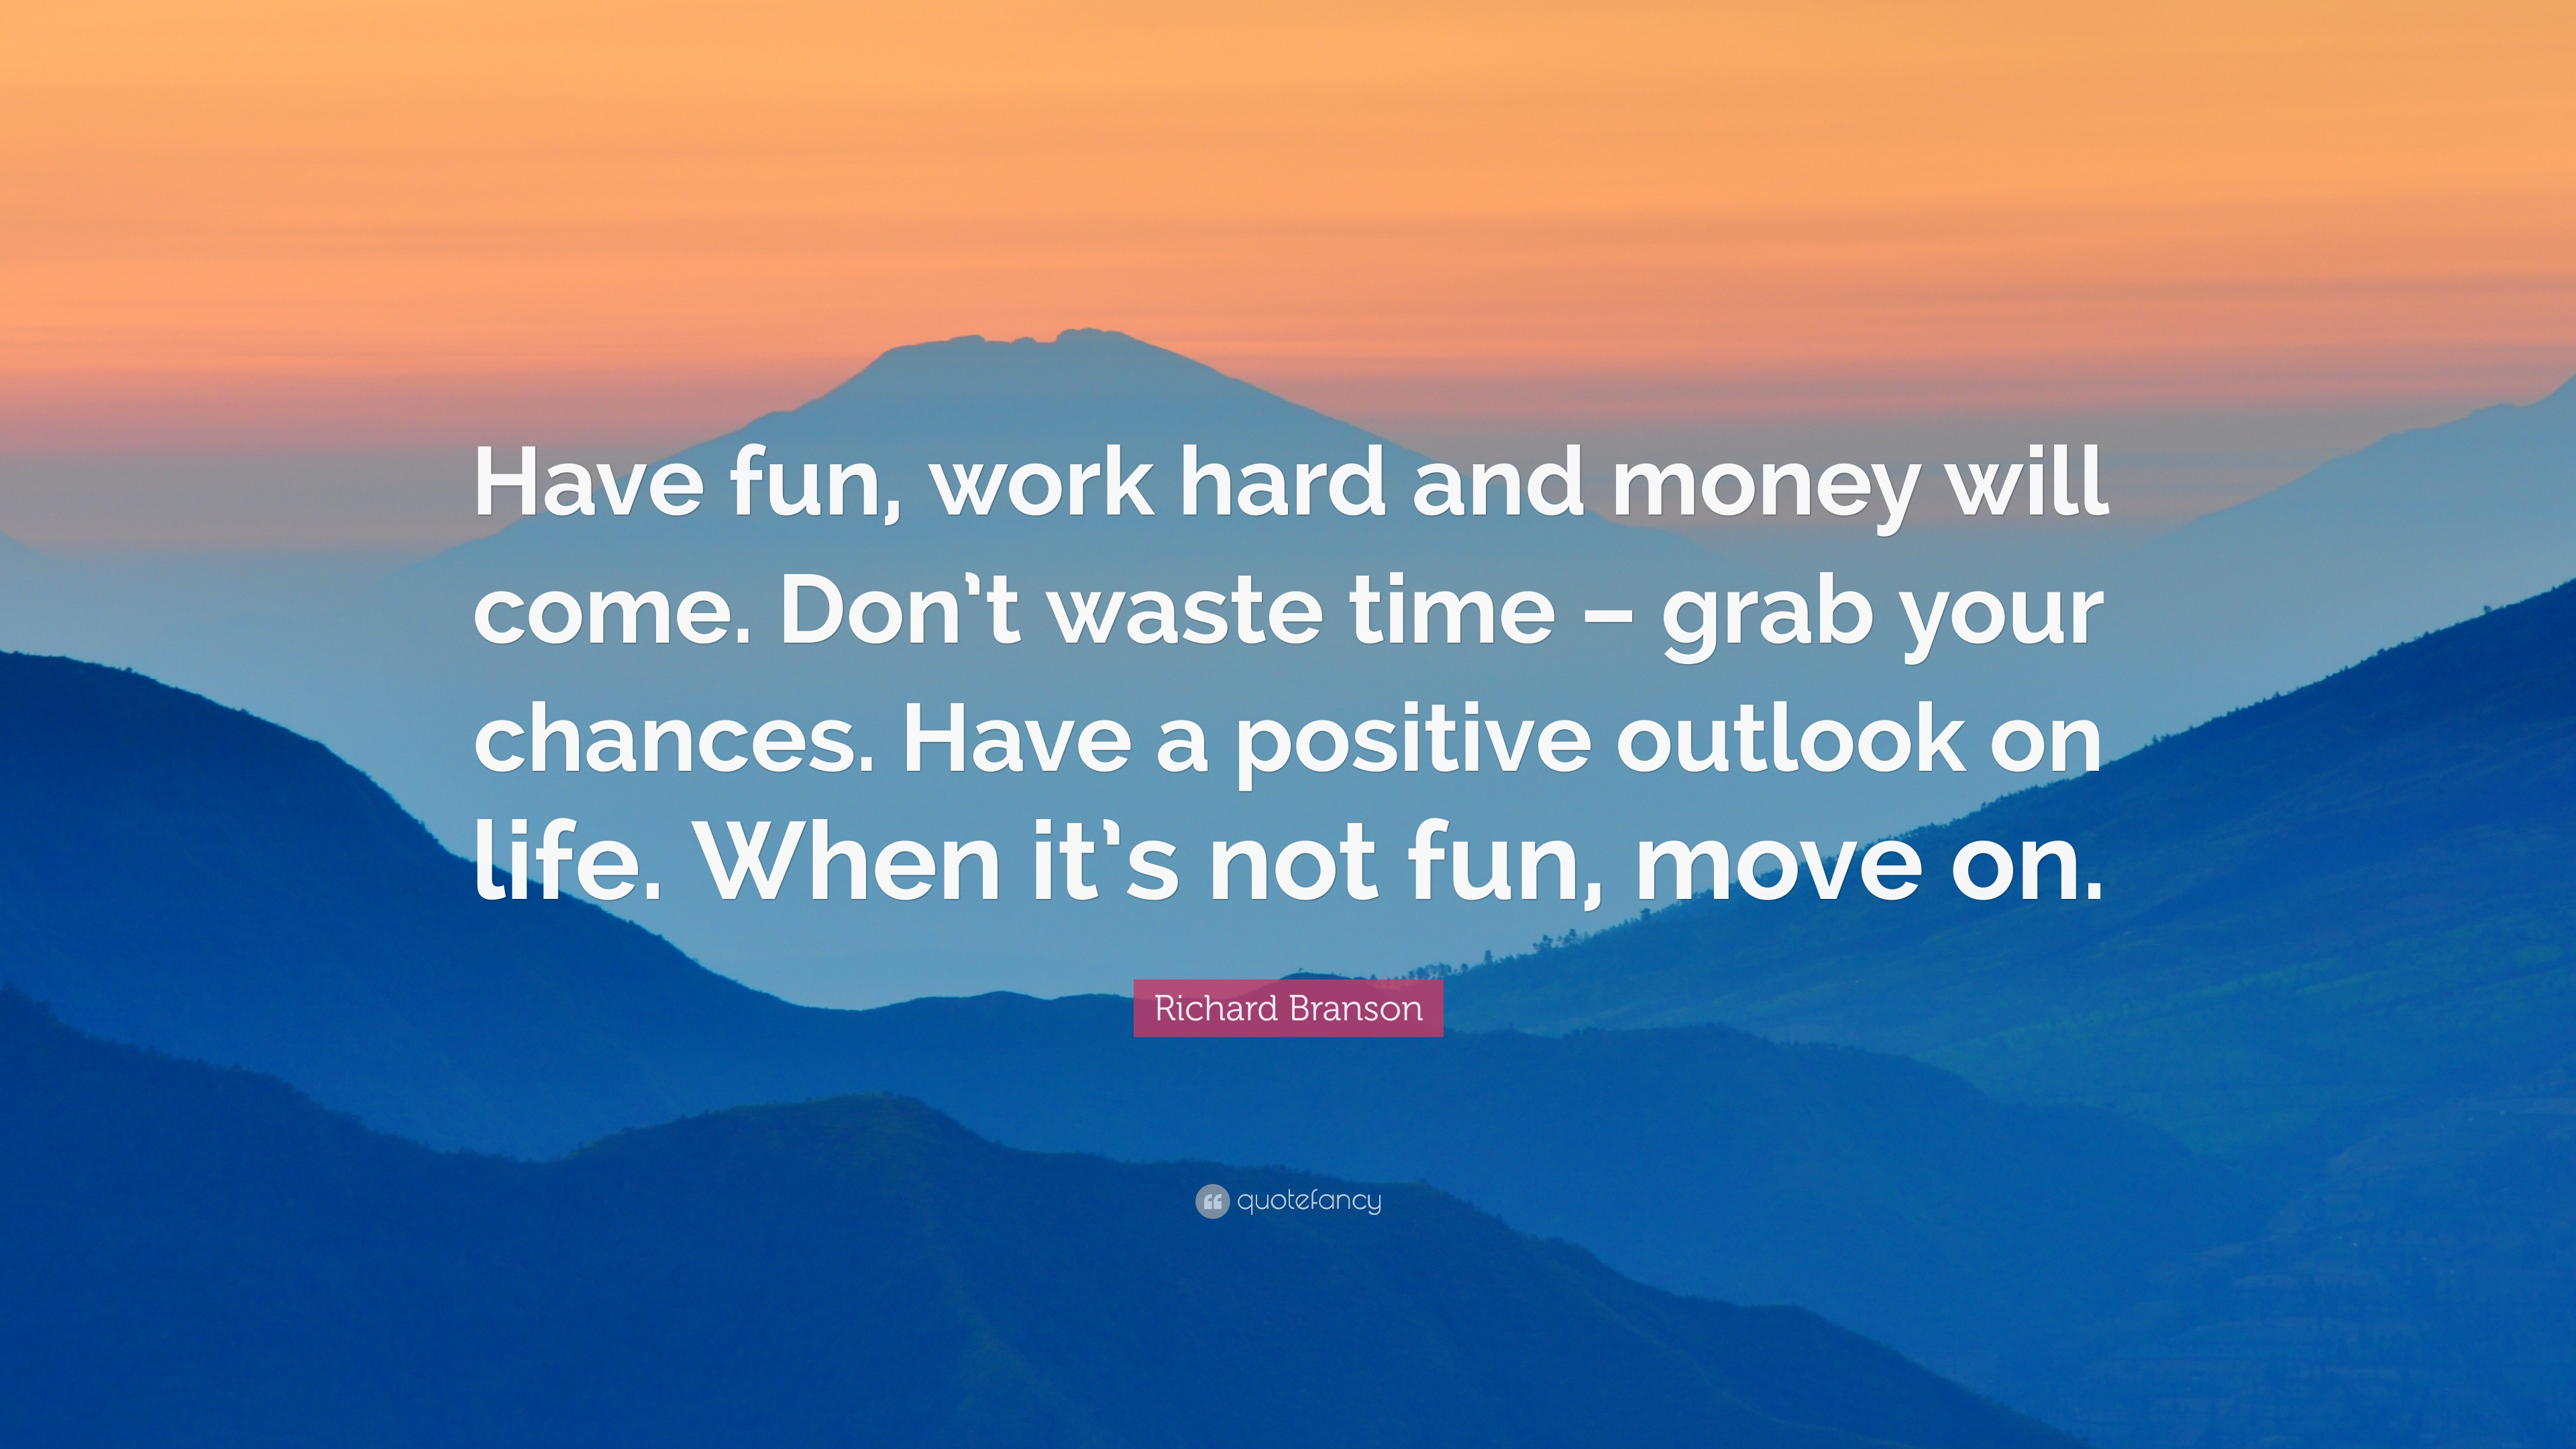 Chances Quotes Wallpaper Richard Branson Quote Have Fun Work Hard And Money Will